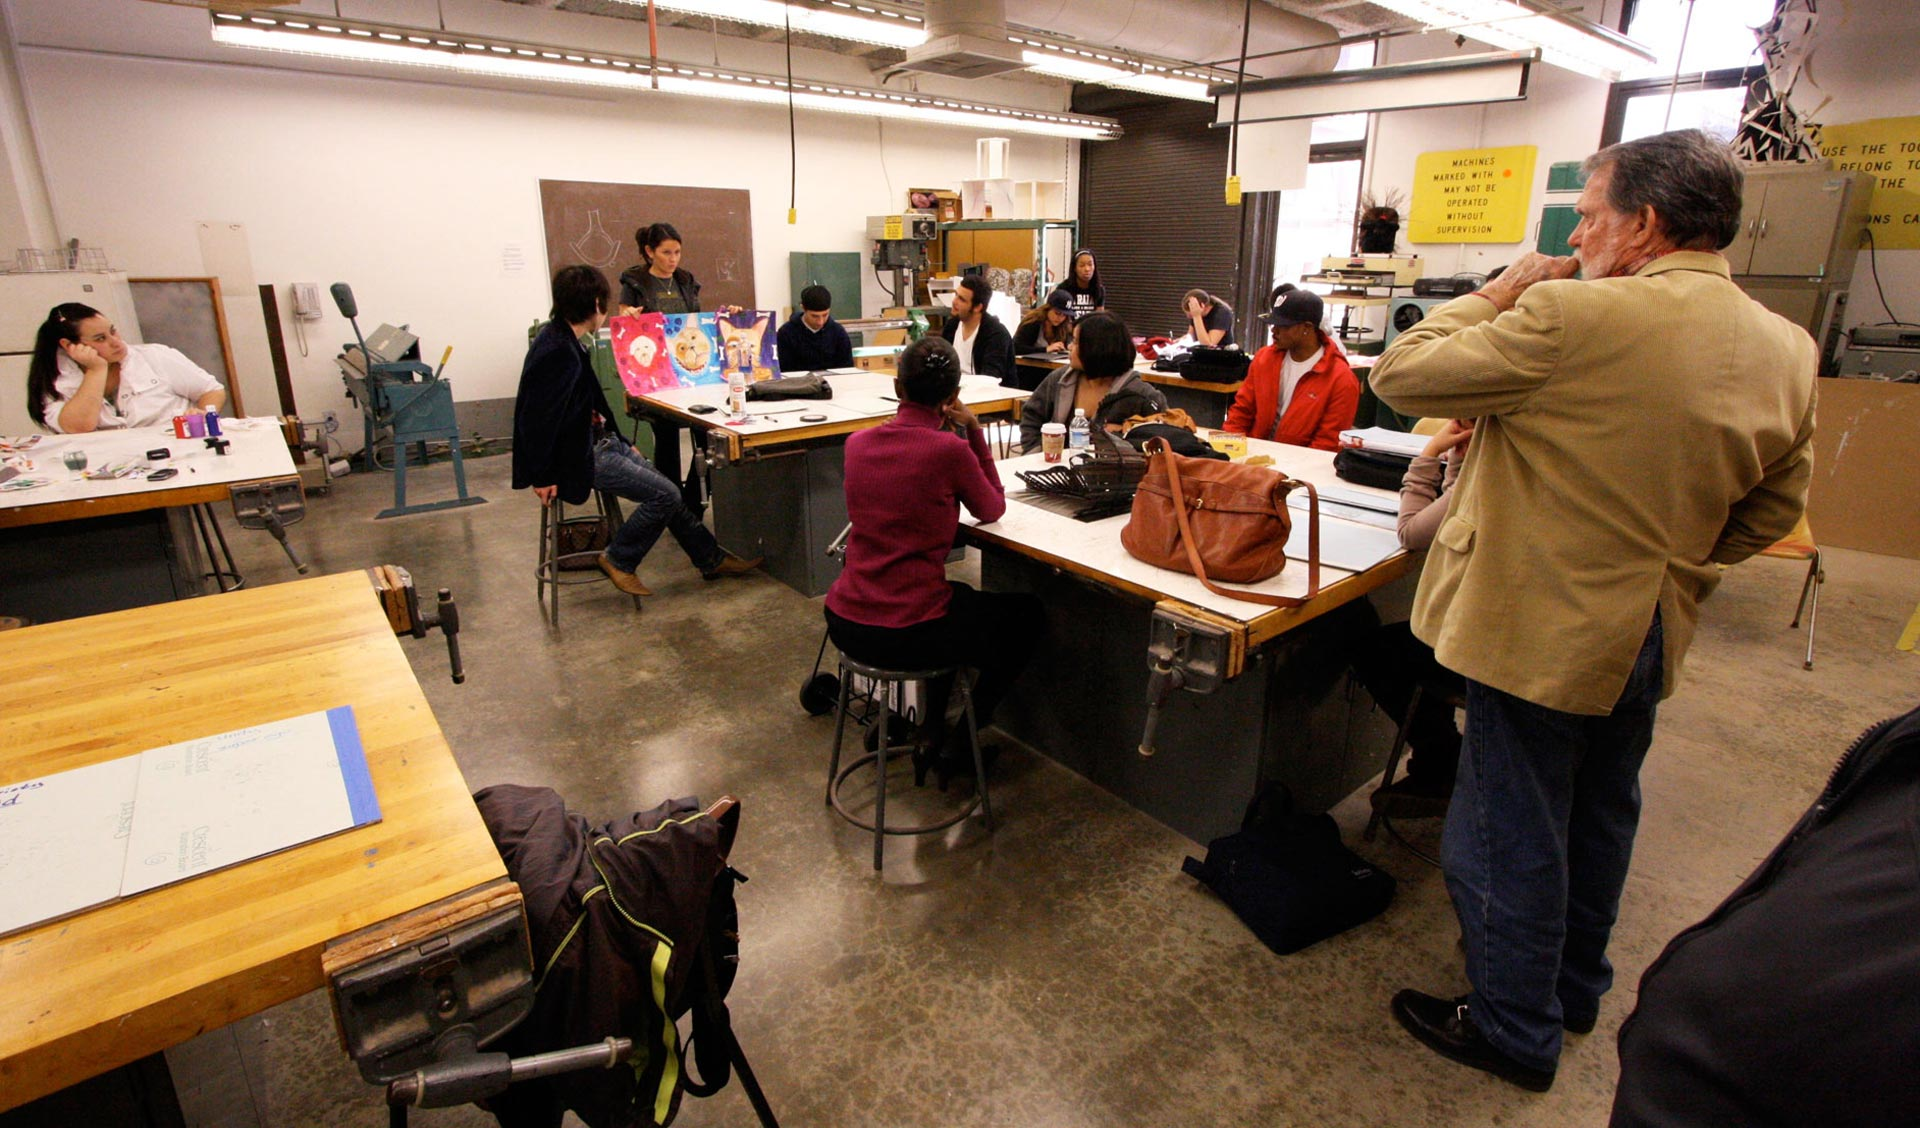 Students participate in an art class at CSU Dominguez Hills.